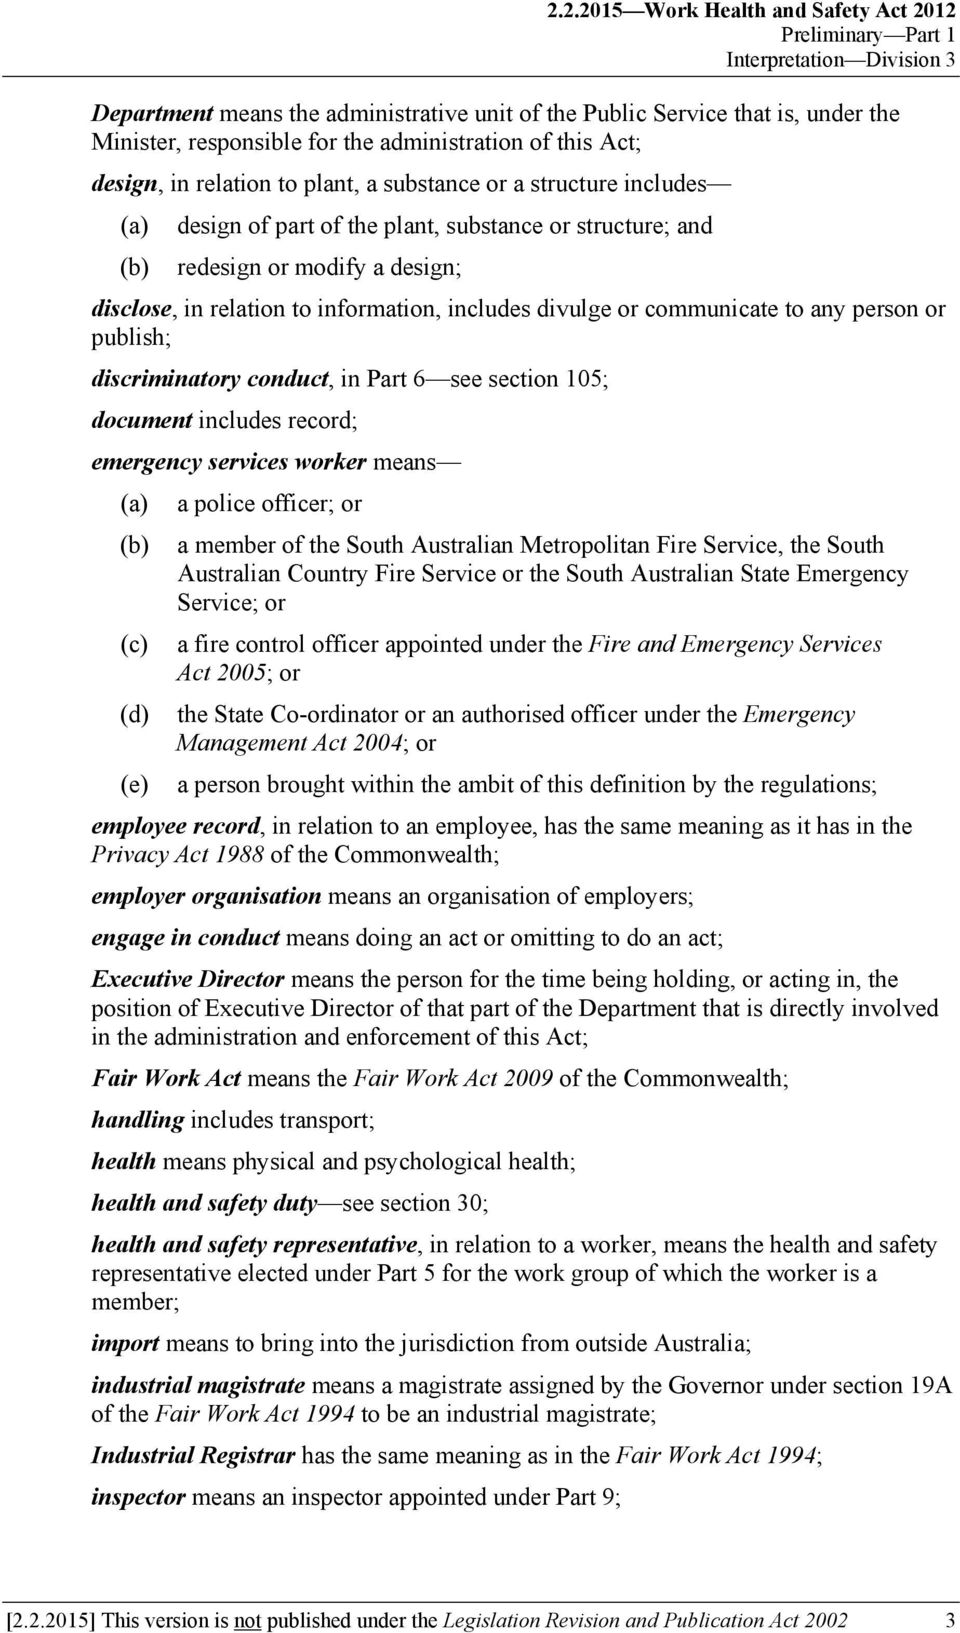 relation to information, includes divulge or communicate to any person or publish; discriminatory conduct, in Part 6 see section 105; document includes record; emergency services worker means a